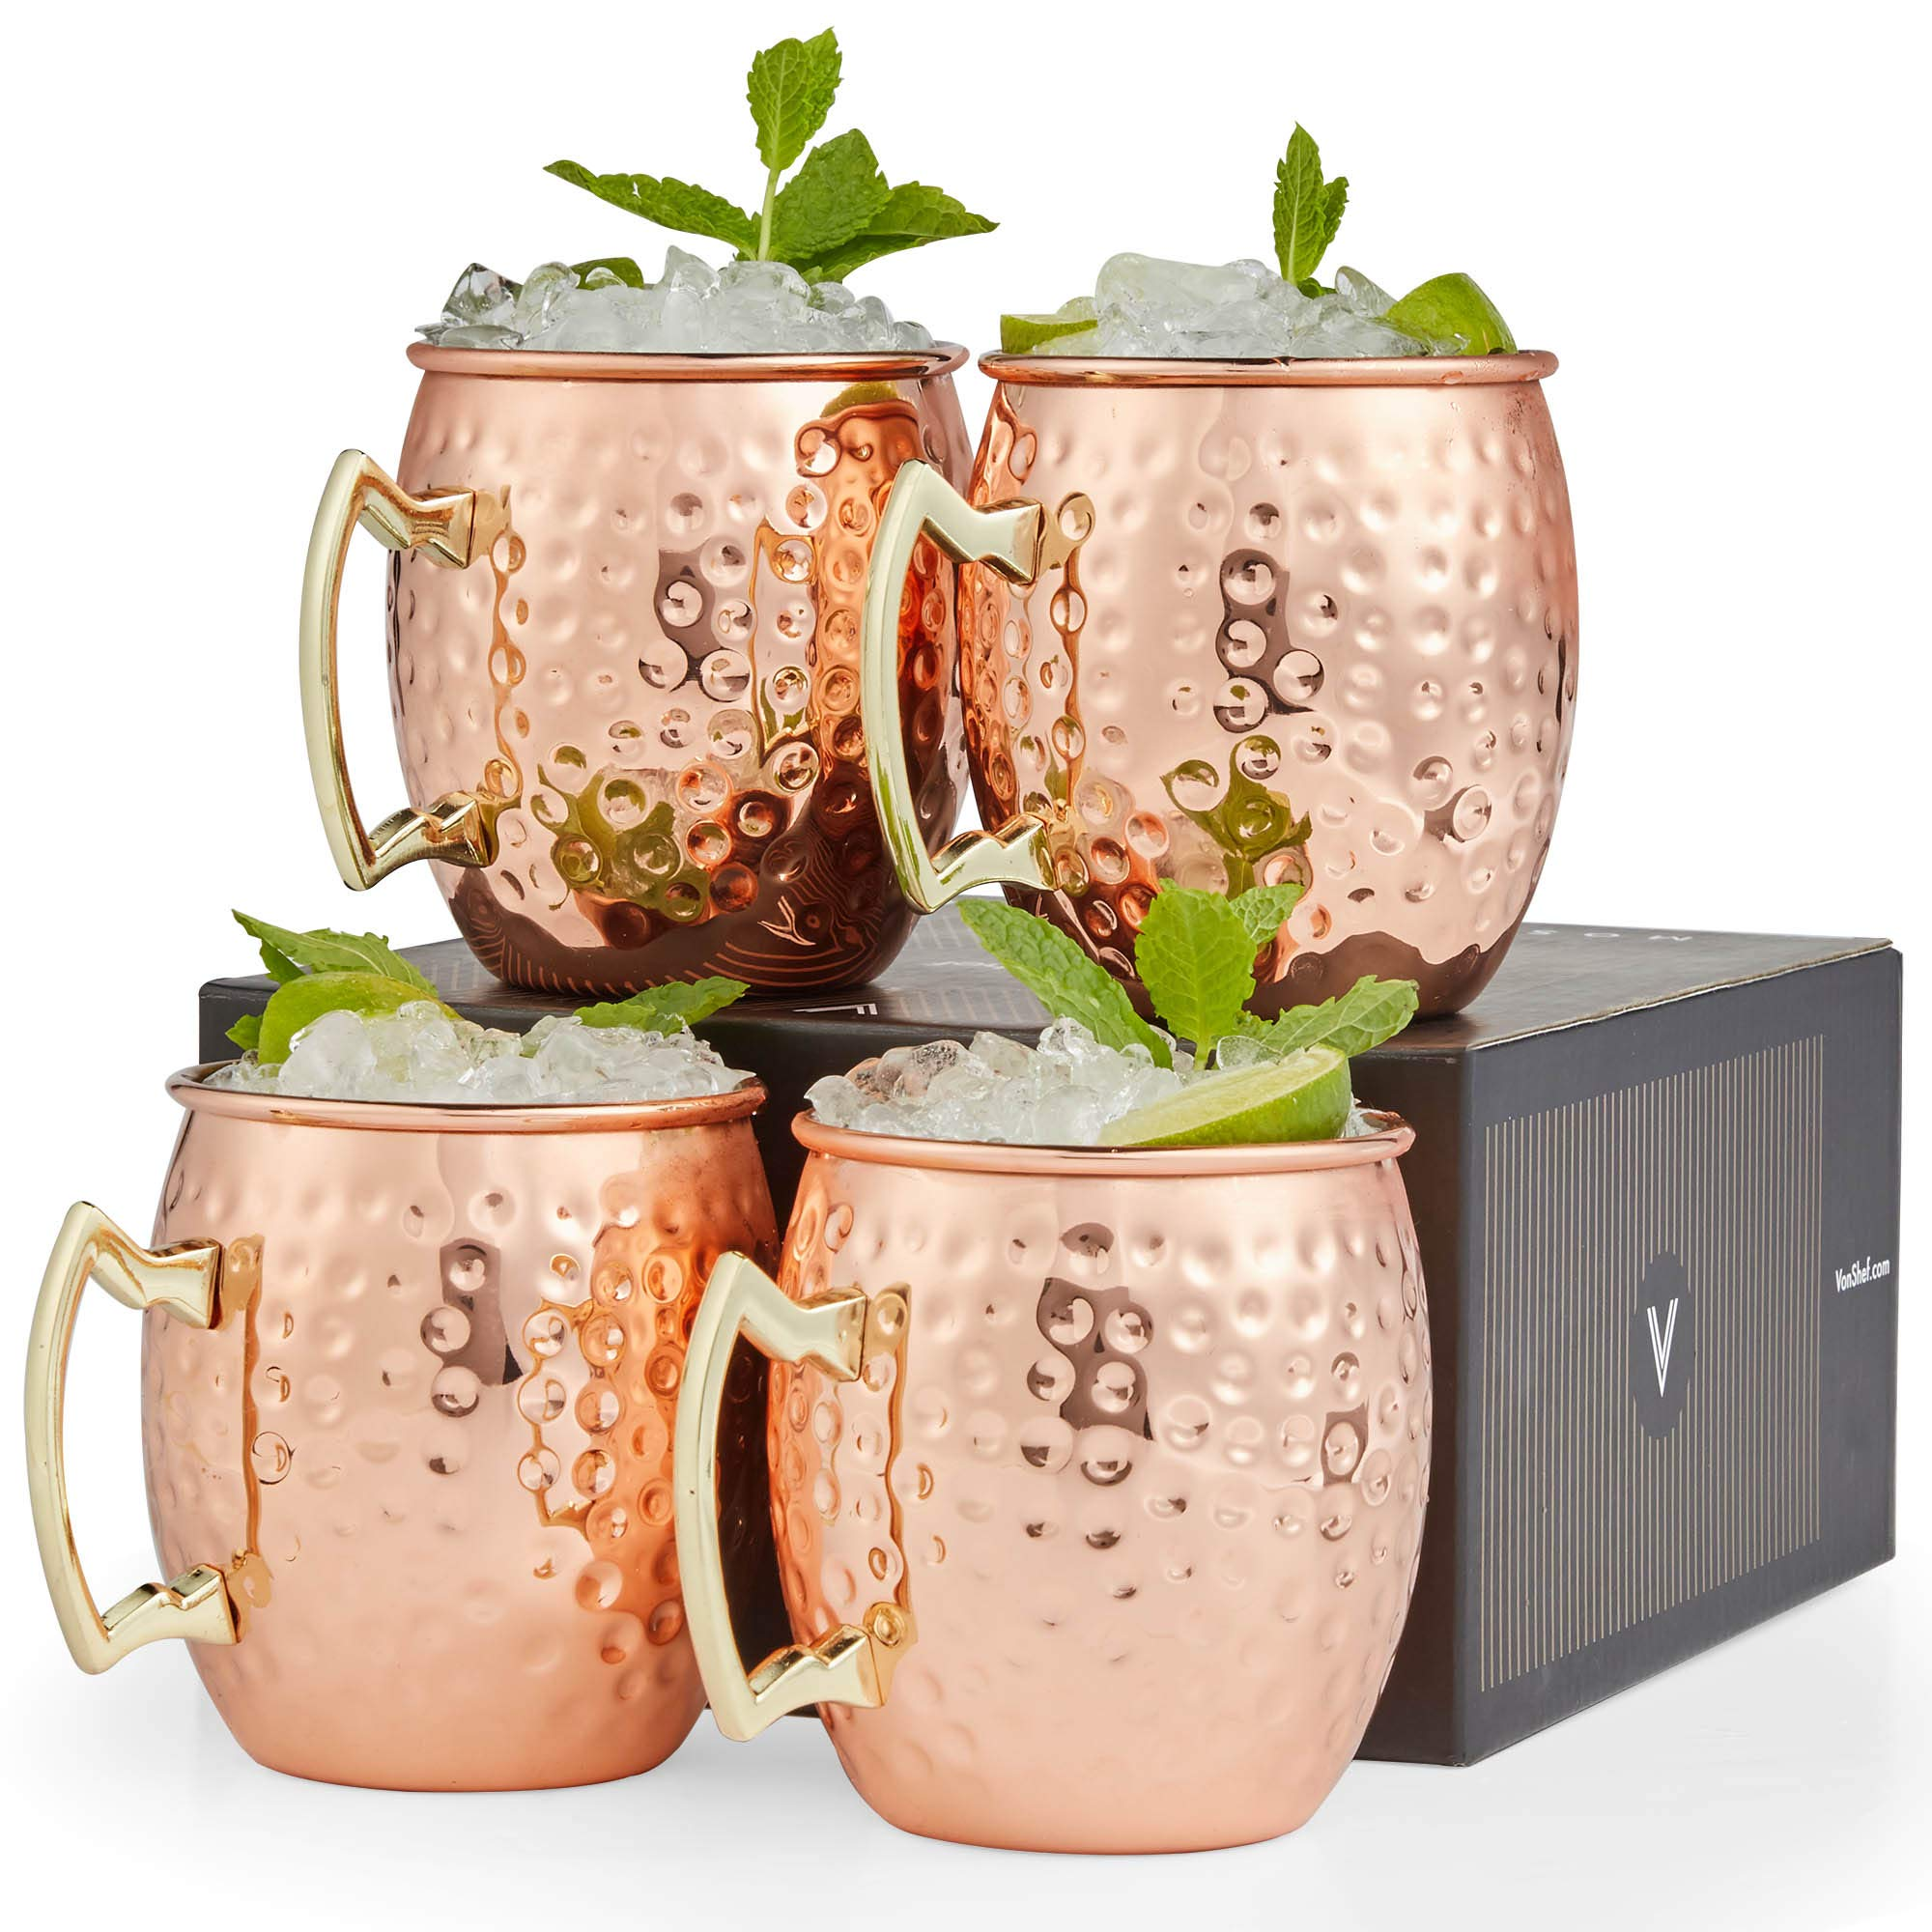 VonShef Moscow Mule Copper Mugs Set of 4 Hammered Effect Barrel Style 16oz Glasses With Gift Box by VonShef